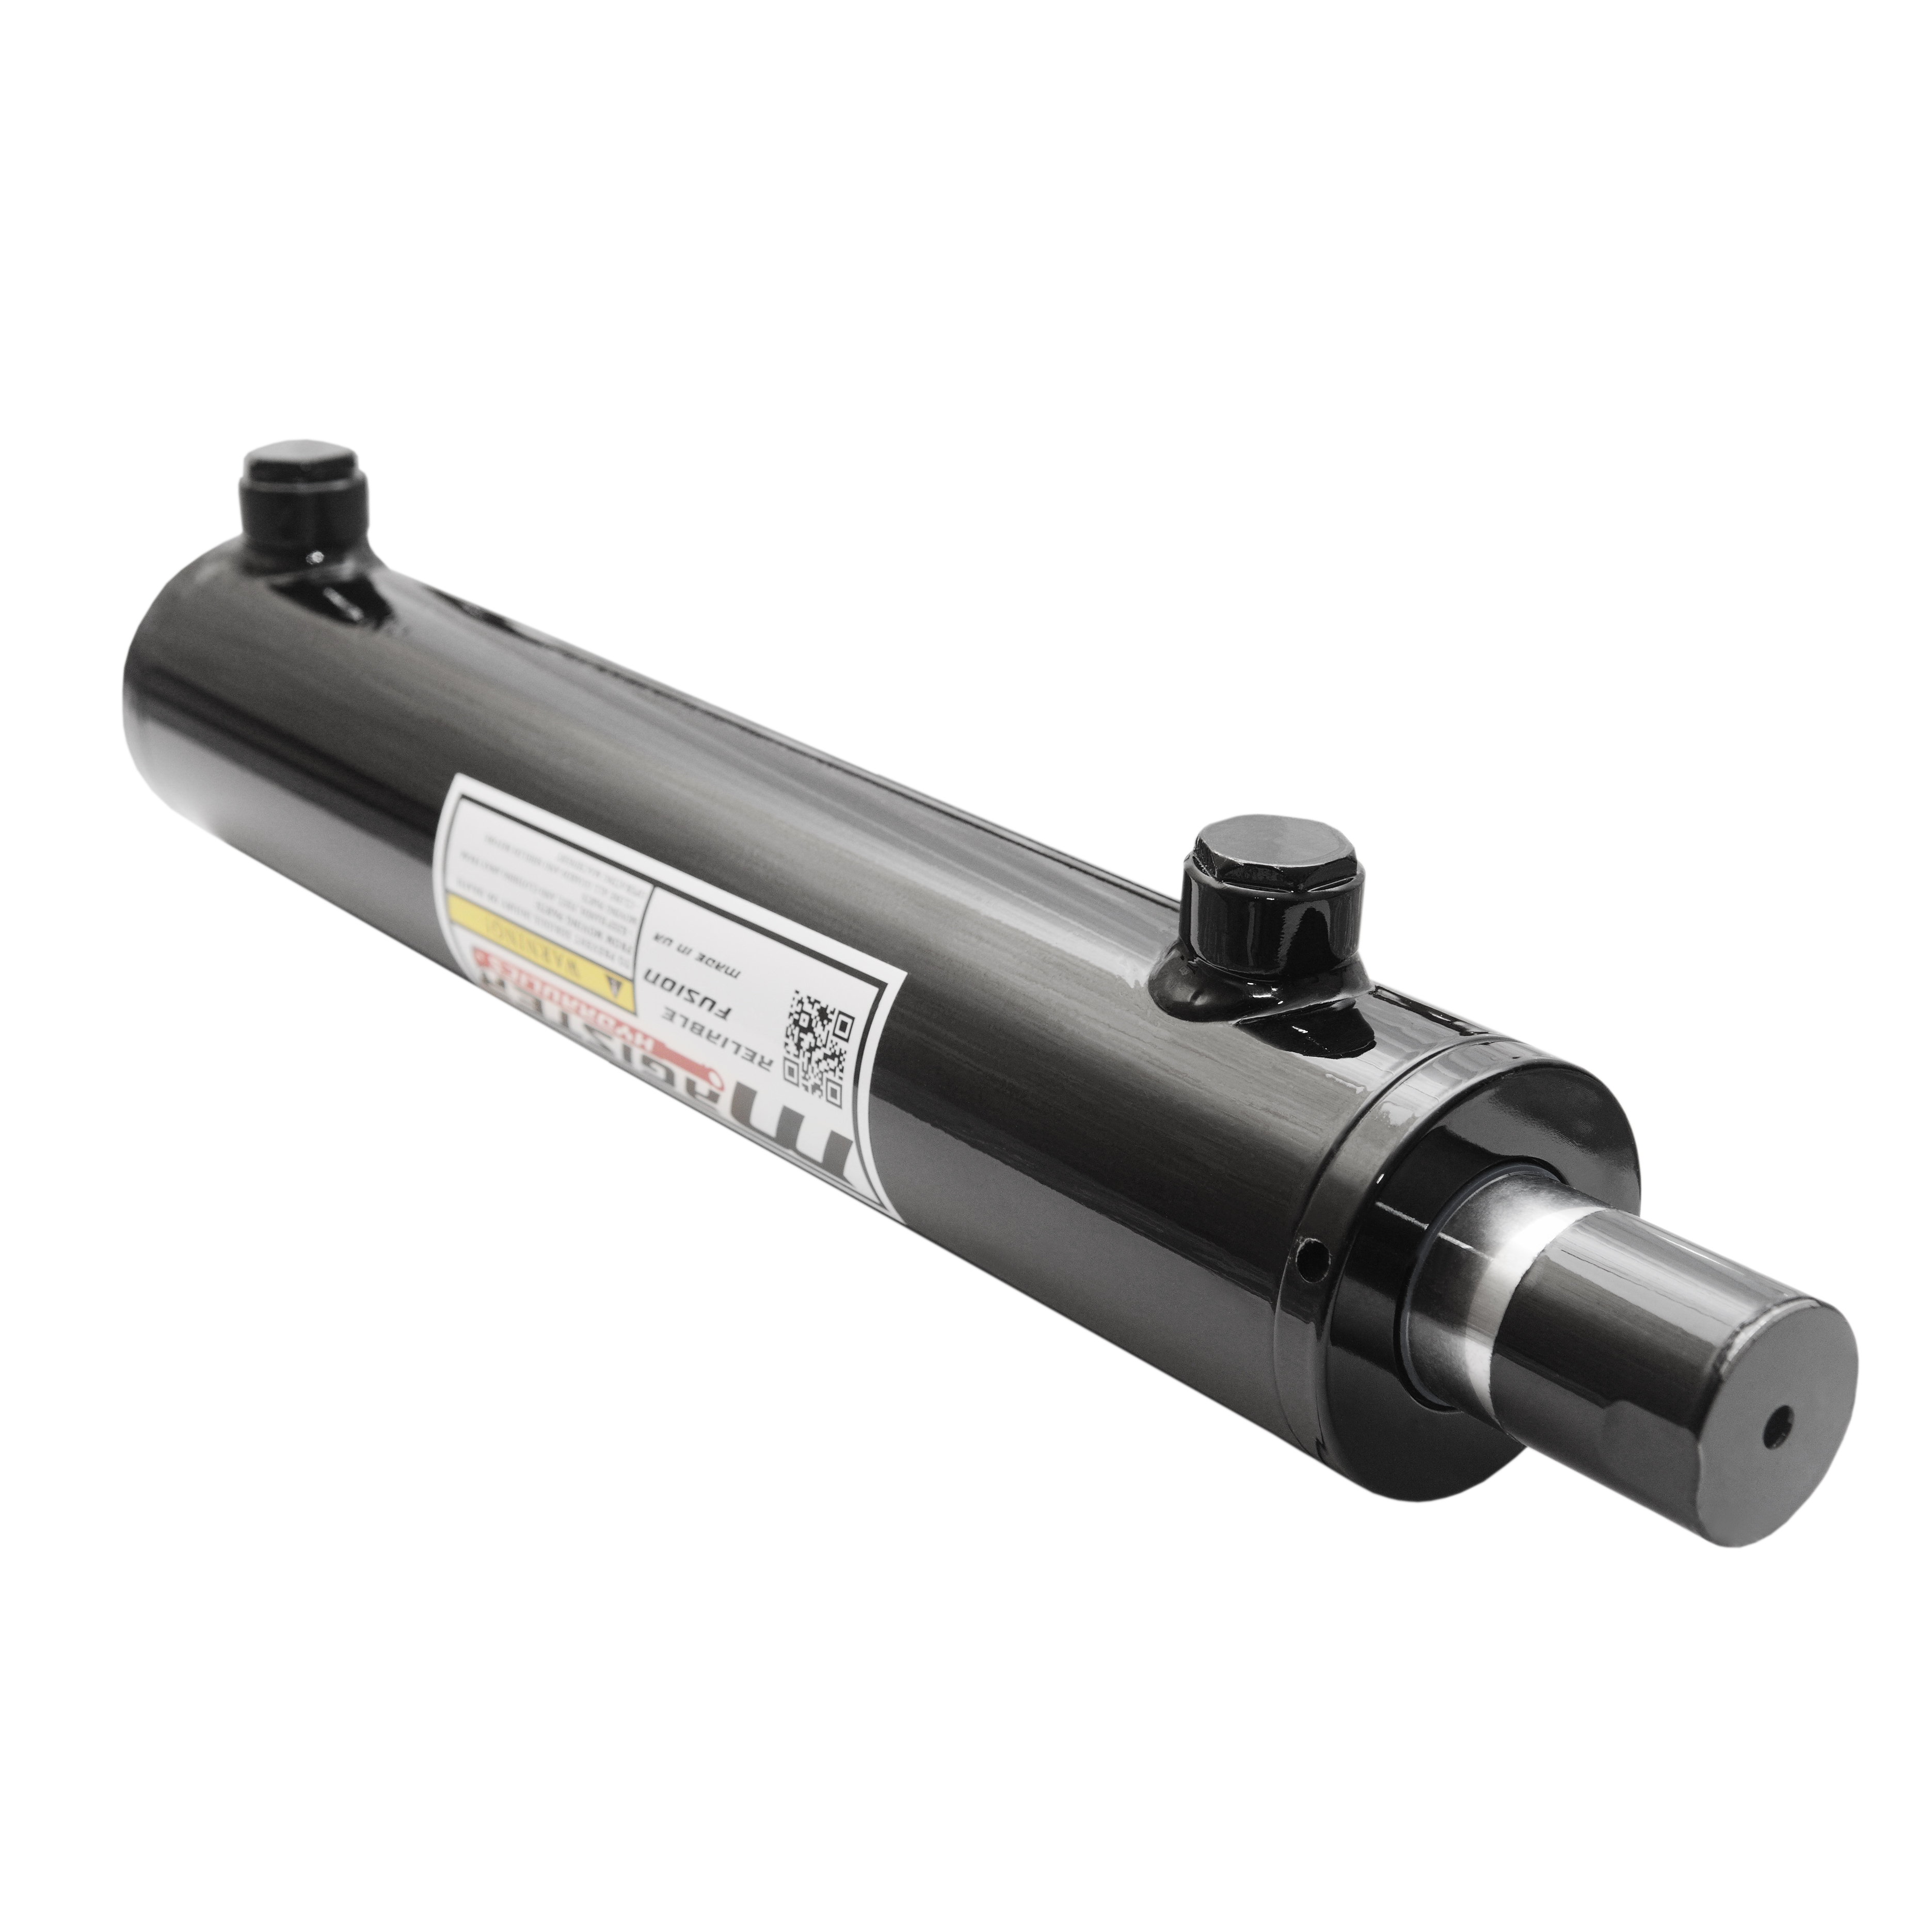 2 bore x 20 stroke hydraulic cylinder, welded universal double acting cylinder | Magister Hydraulics